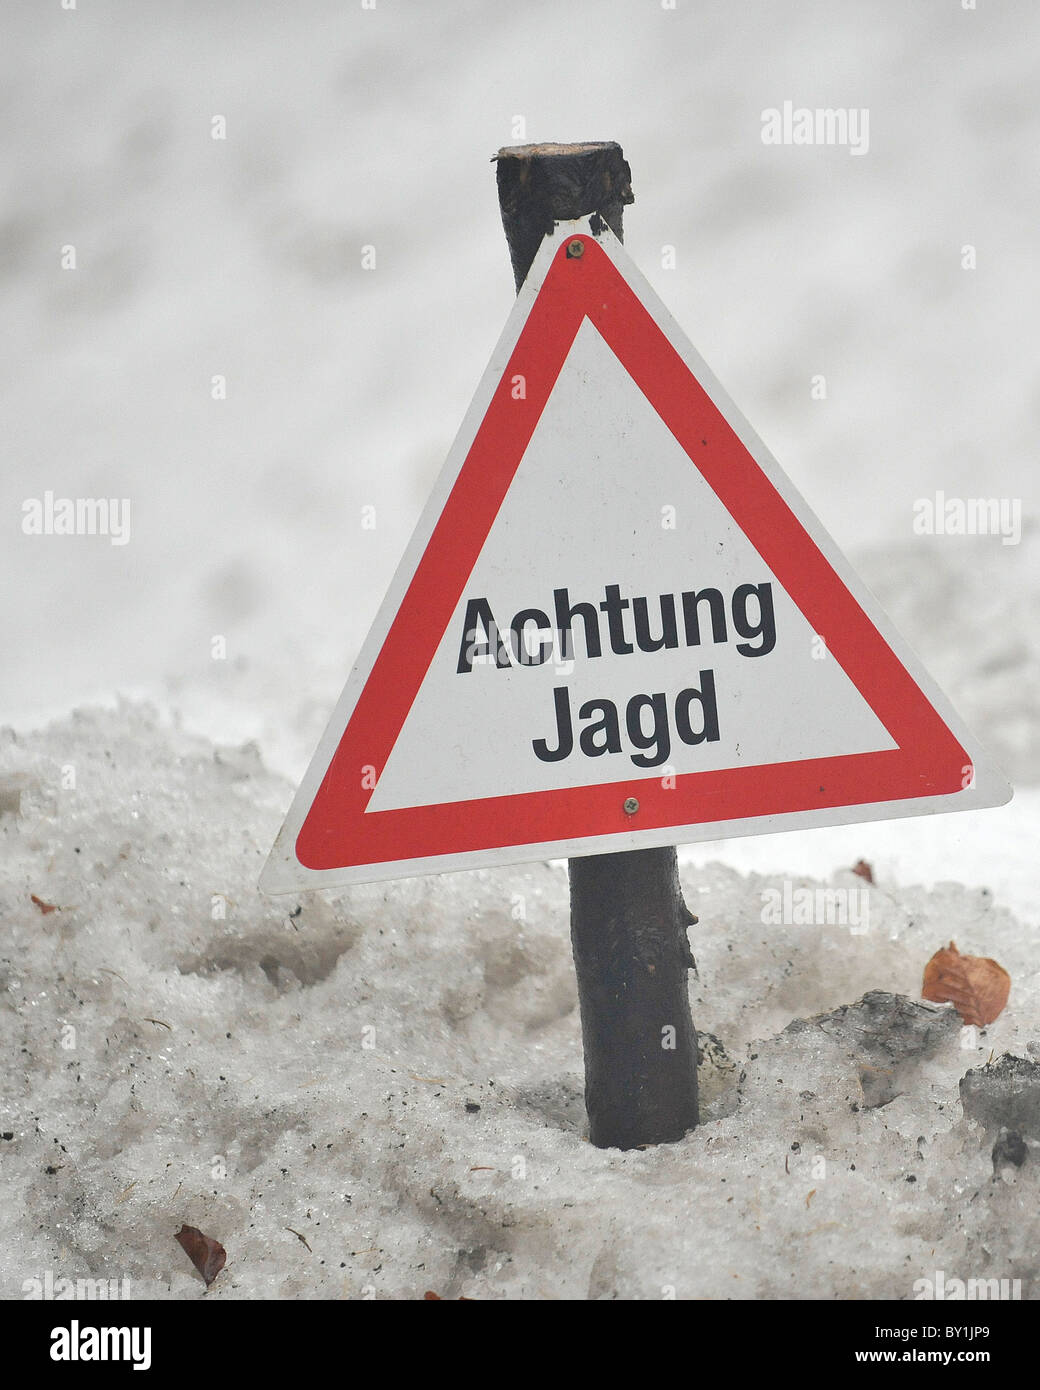 hunting sign in germany - Stock Image